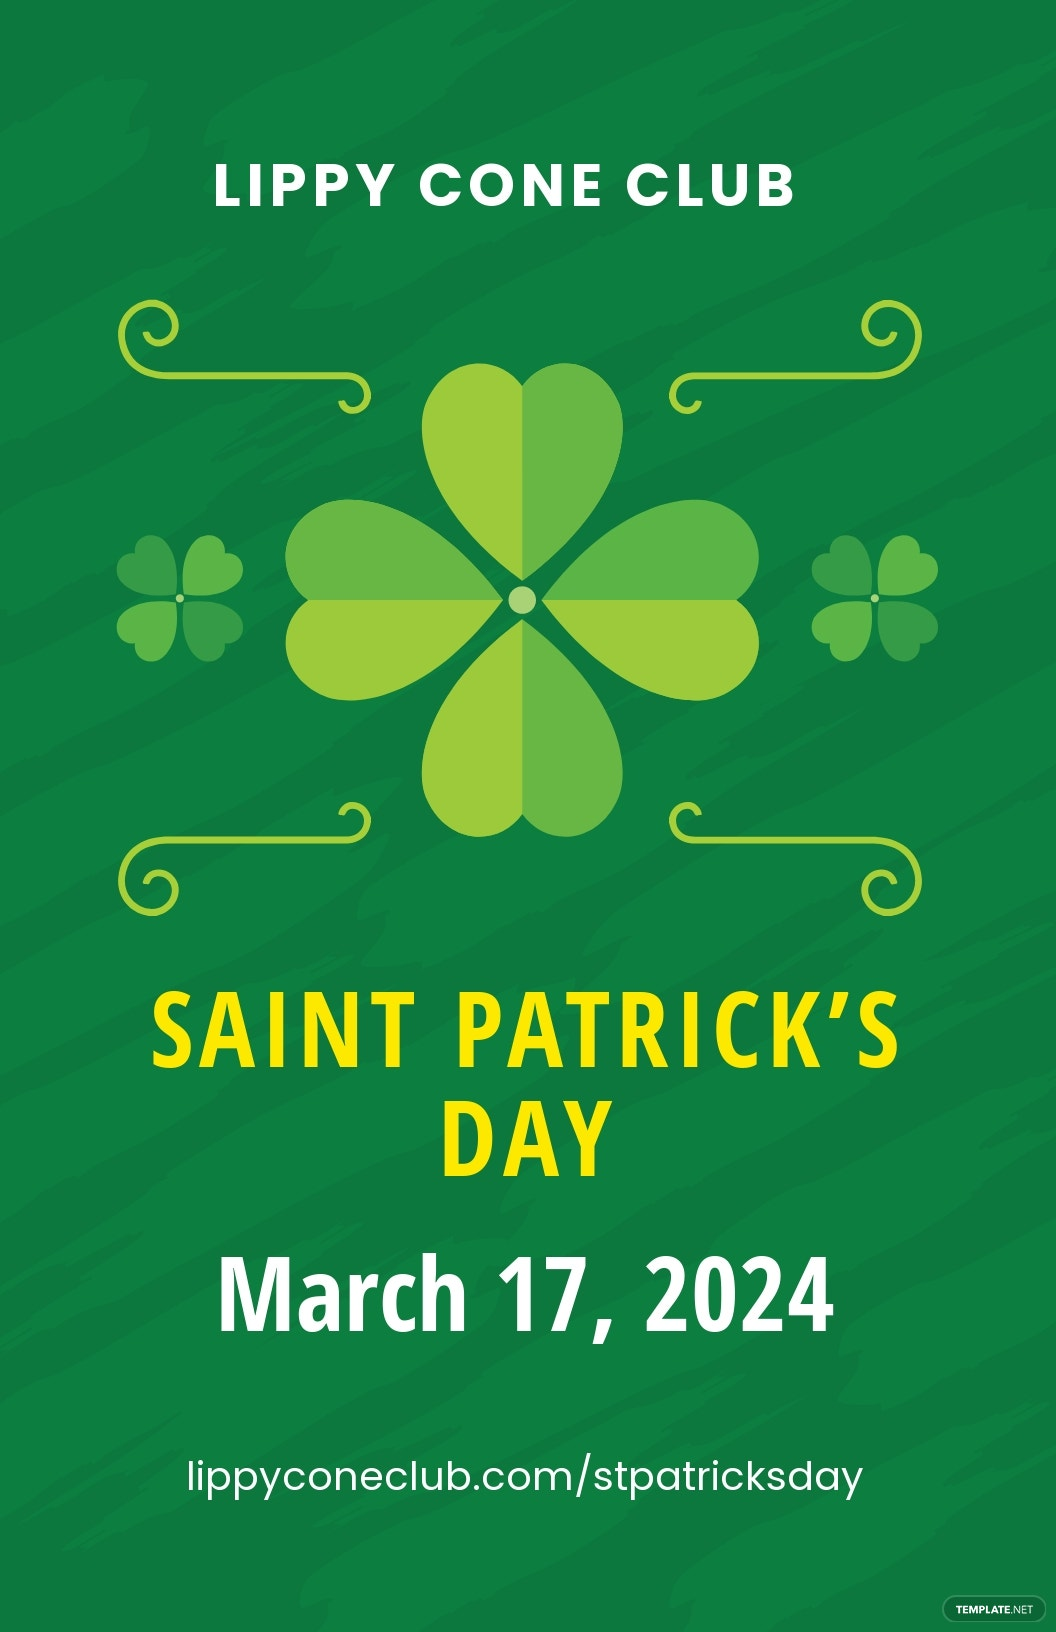 Free St Patrick's Day Poster Template.jpe